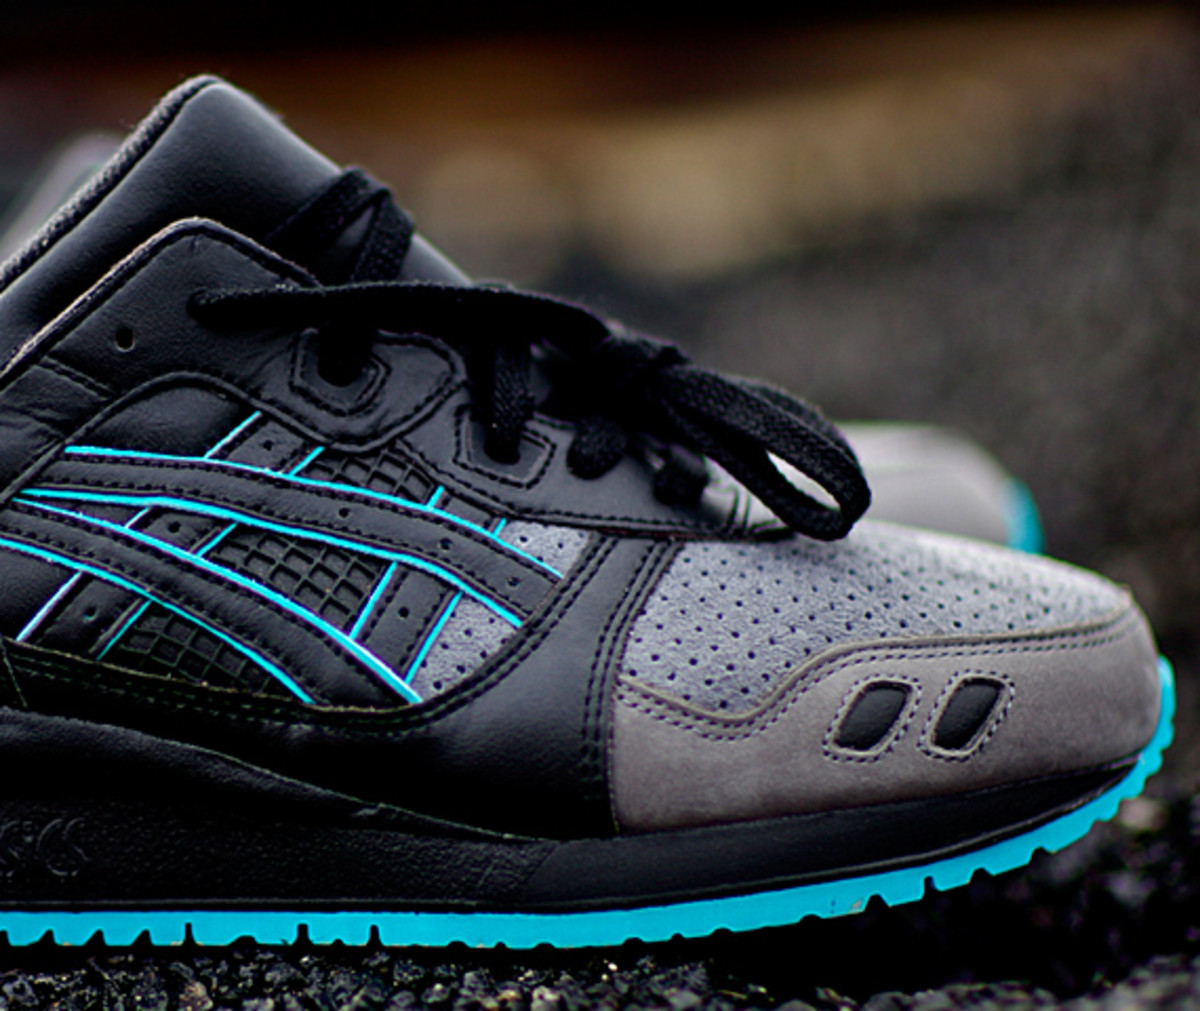 ronnie-fieg-asics-gel-lyte-iii-leather-back-kith-03